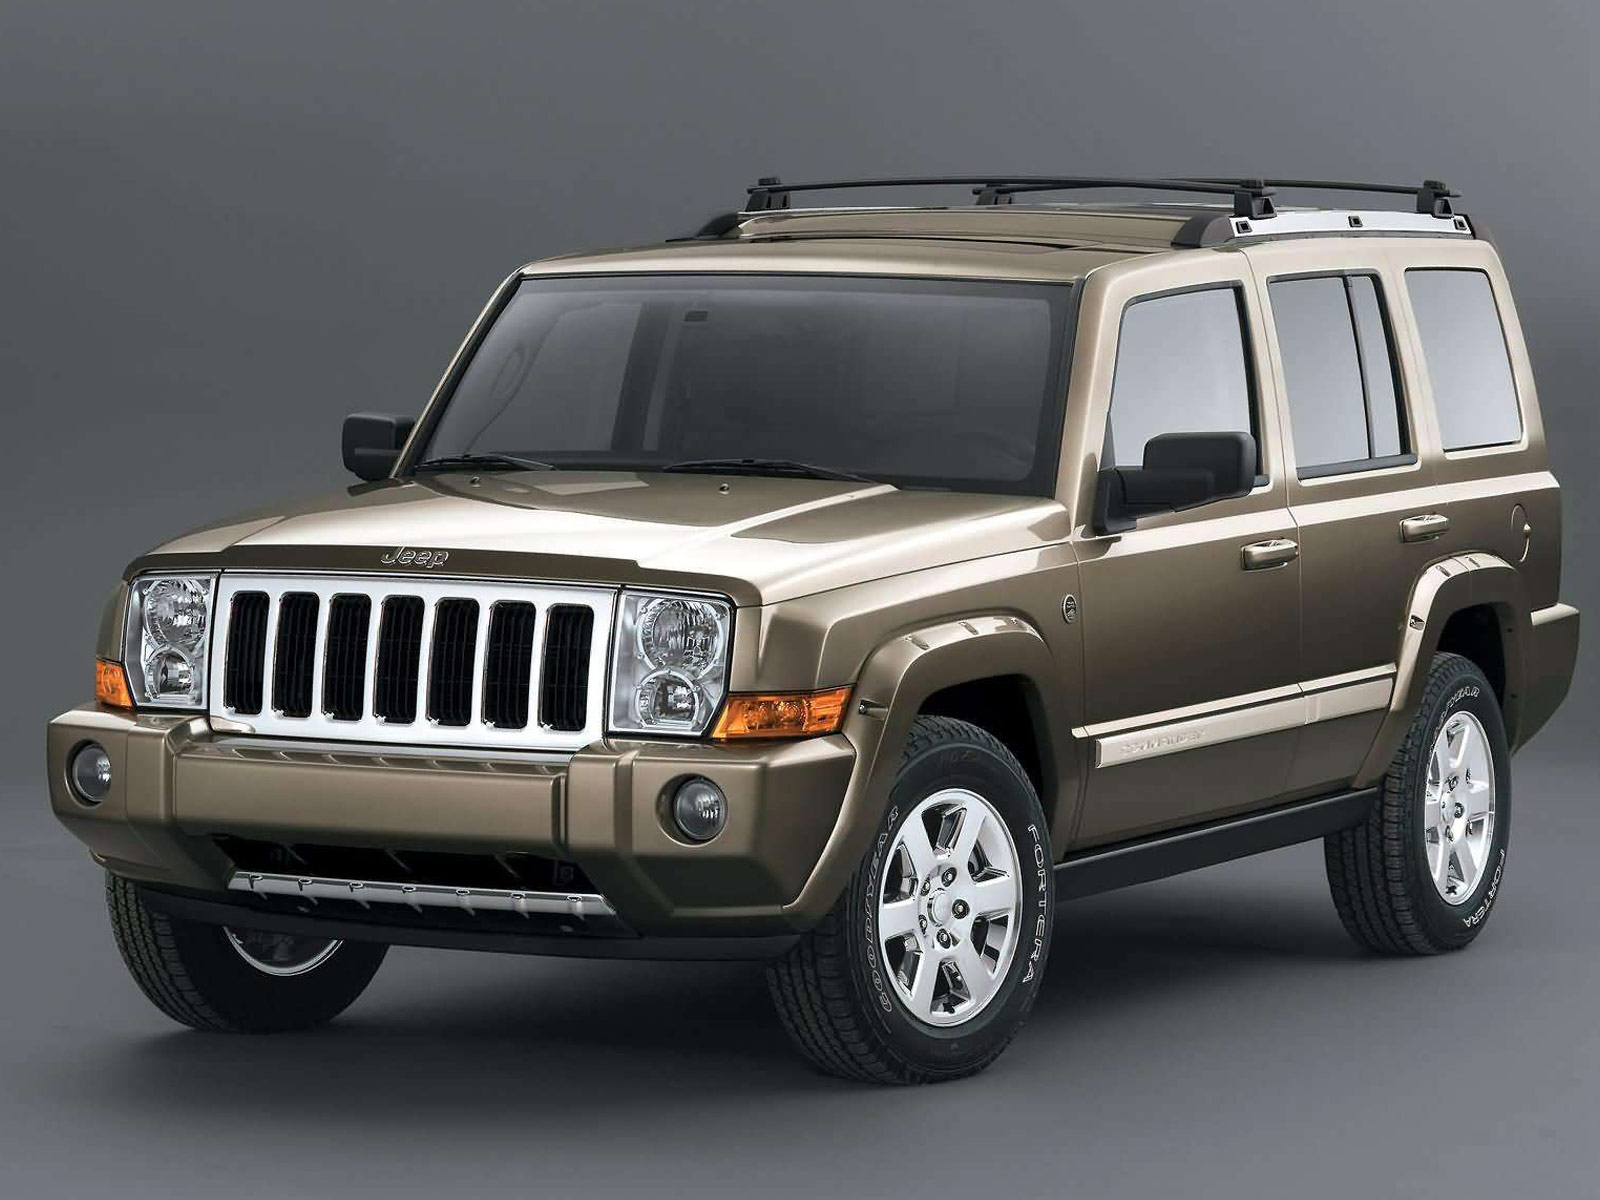 2006 JEEP Commander 4x4 Limited 5.7 HEMI pictures